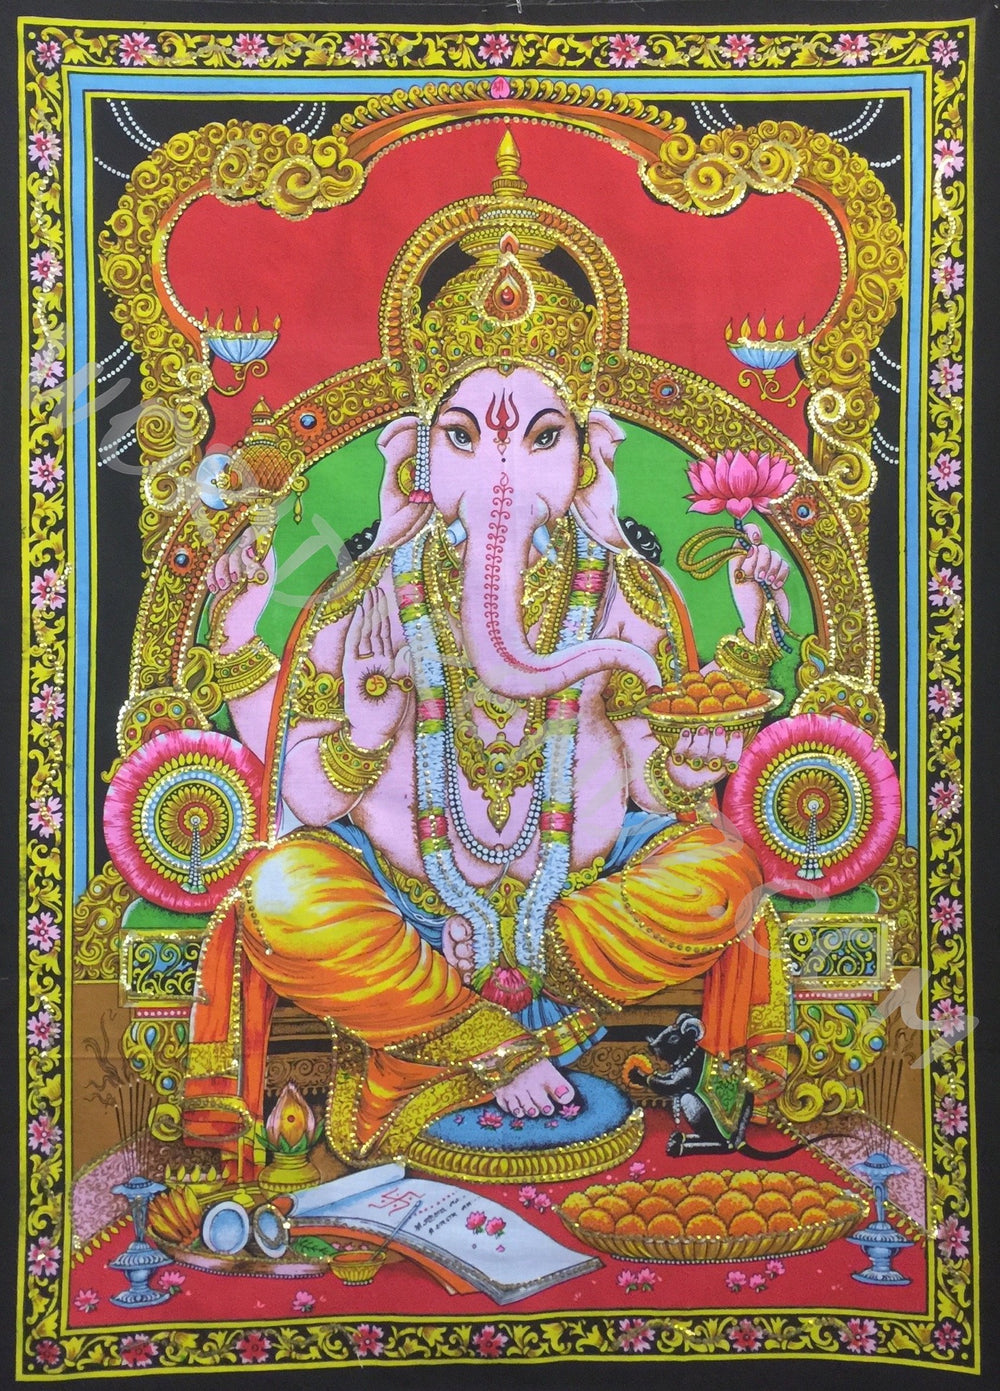 DEITY TAPESTRY SEQUINED GANESHA BLESSING